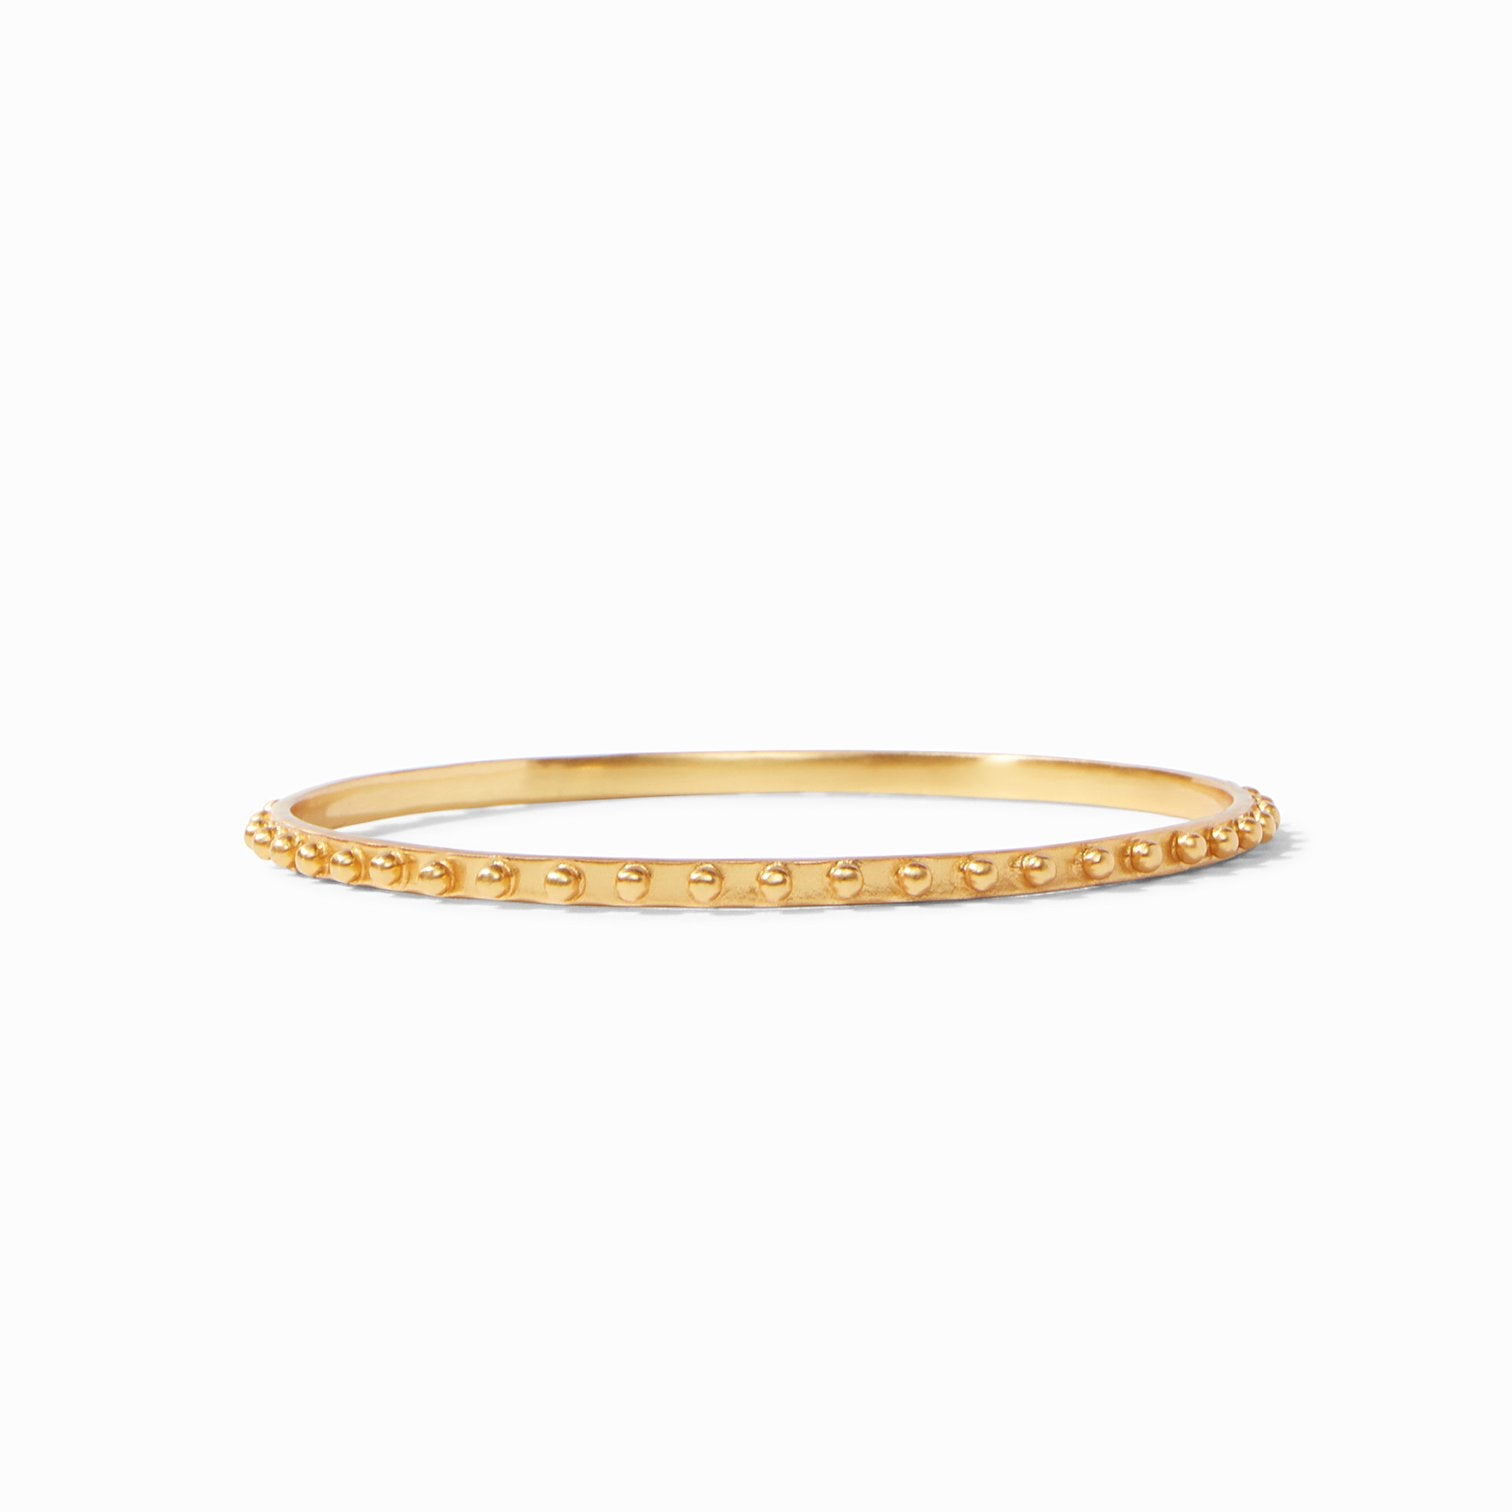 Soho Bangle - Julie Vos